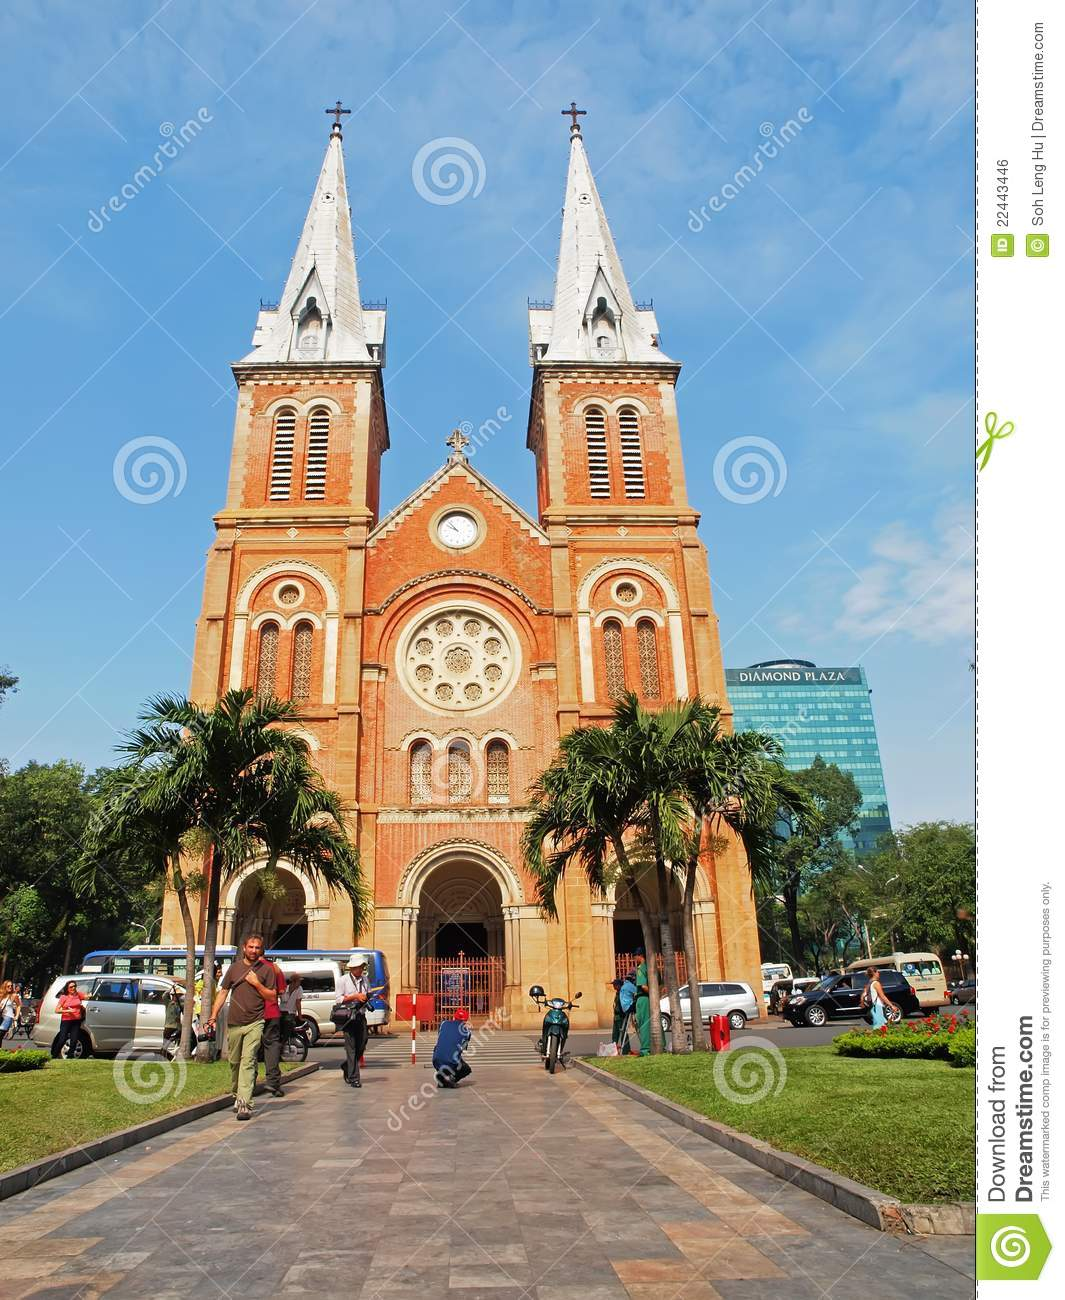 ho chi minh city latin singles Tefl certificate courses worldwide with via lingua tefl certification courses in 16 locations across europe, asia and latin america teach english around the world with a via lingua tefl certificate.